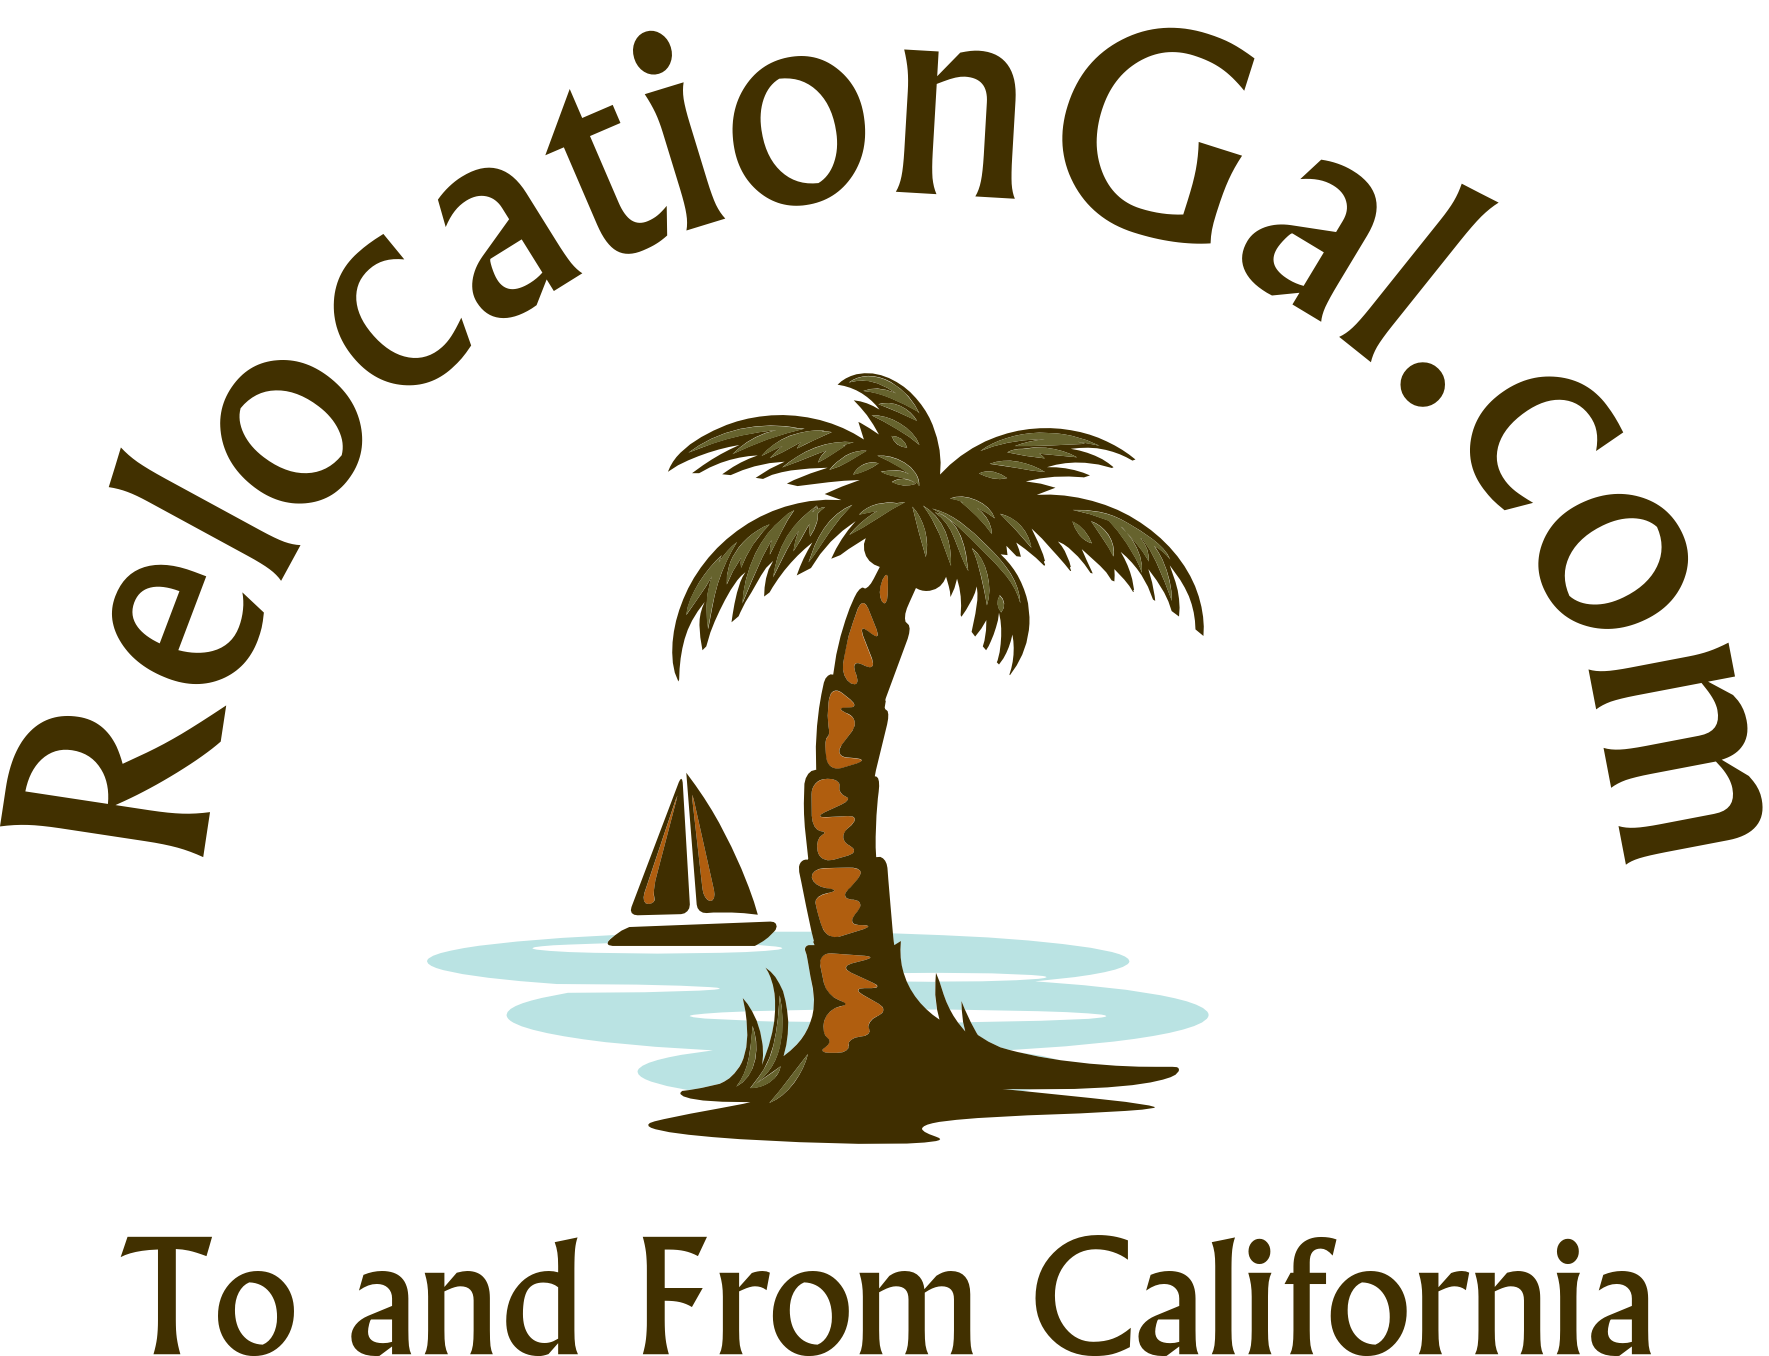 Your relocation expert. To and From California and beyond. Call 888-465-3165   Mirella Kaell MS, Realtor DRE #02057622 KW Bay Area Estates Los Gatos, CA    .  #relocation #downsizing #retirement #newjob #costalliving #firsttimehomebuyer #newhomes #newconstruction #quickdeliveryhomes